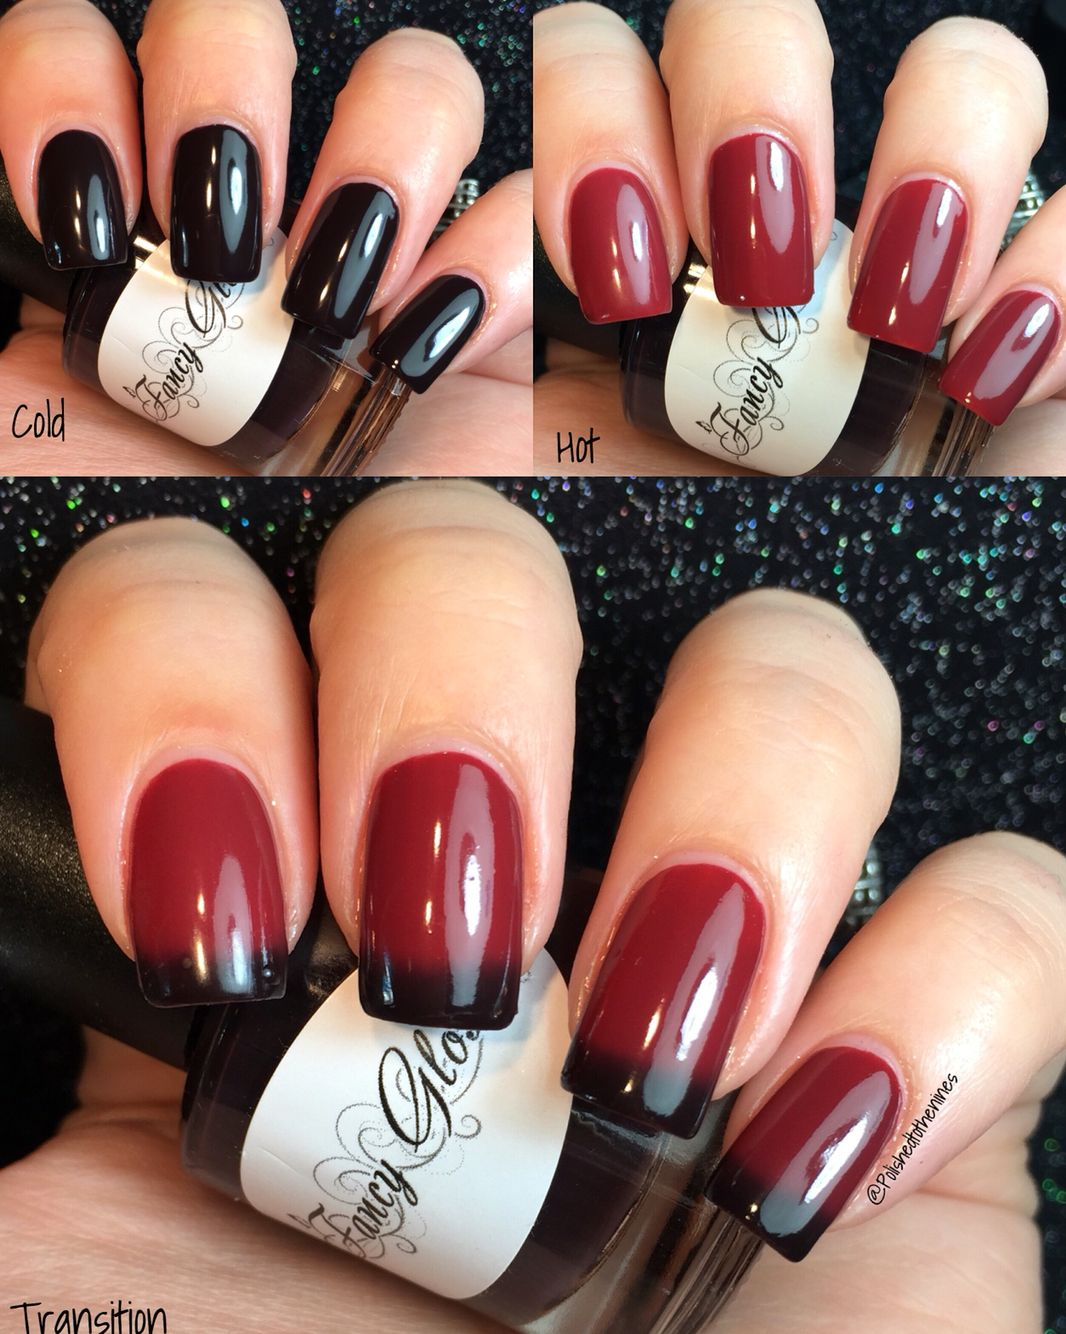 Fancy Gloss - Black Heart - Thermal Polish | My Fancy Gloss Swatches ...